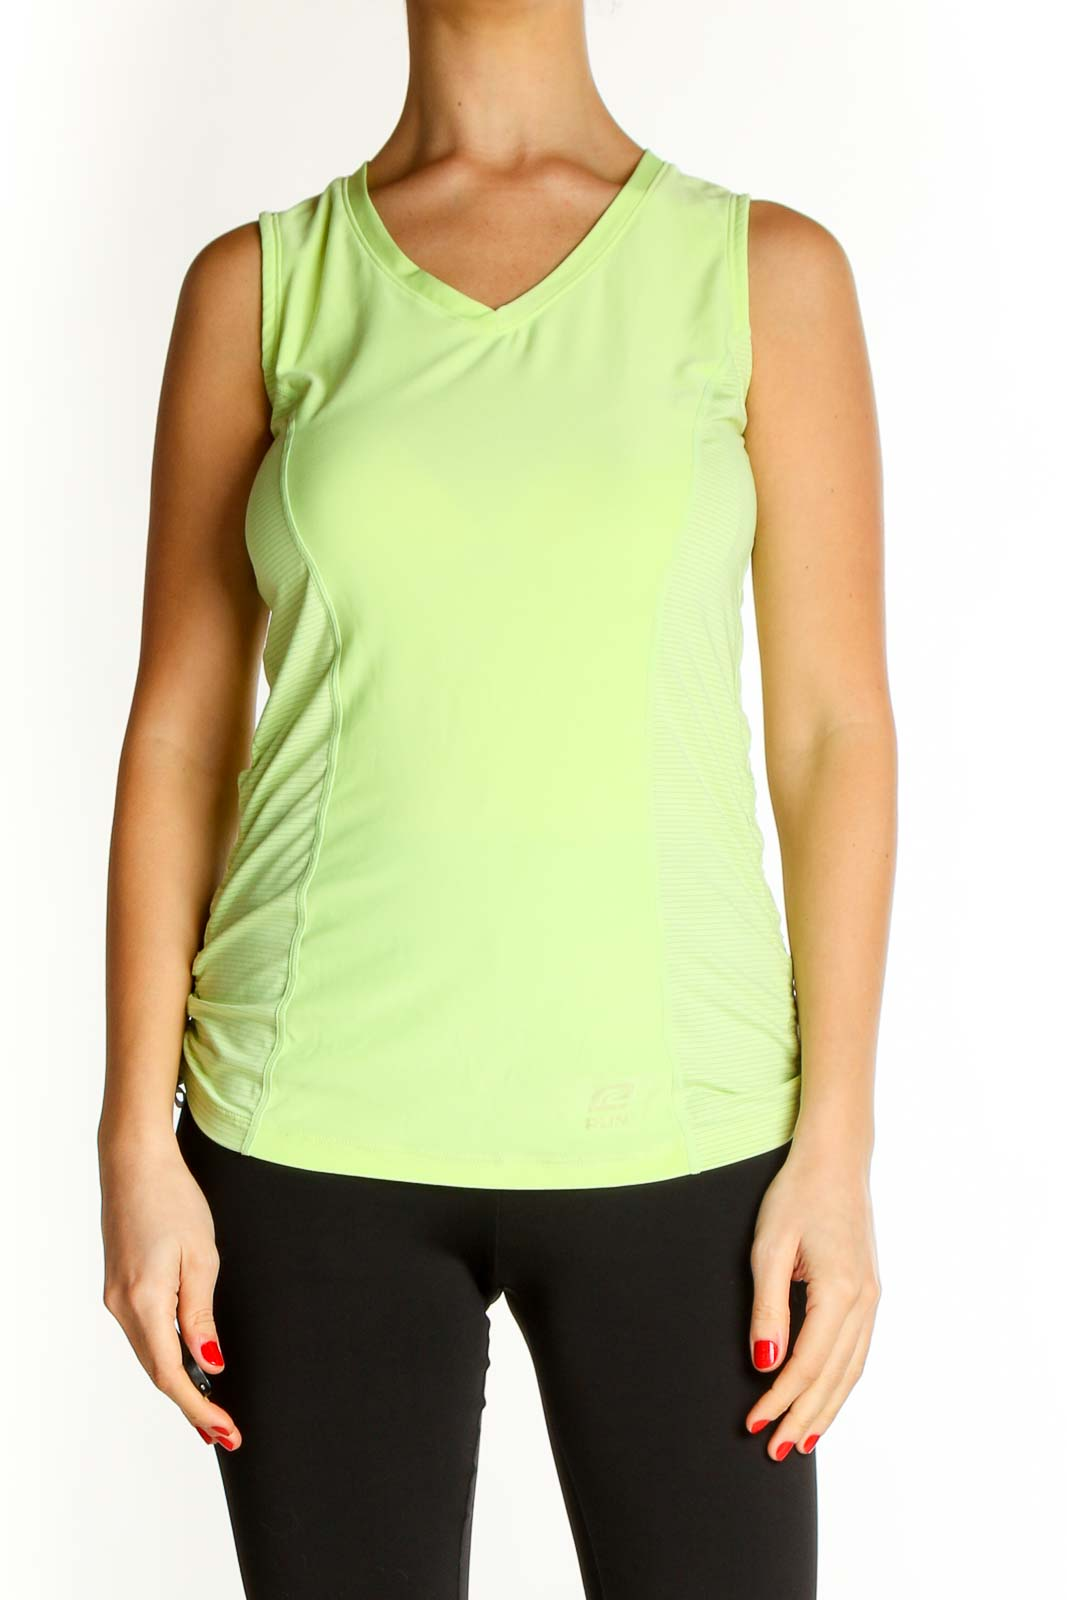 Green Solid Casual Tank Top Front